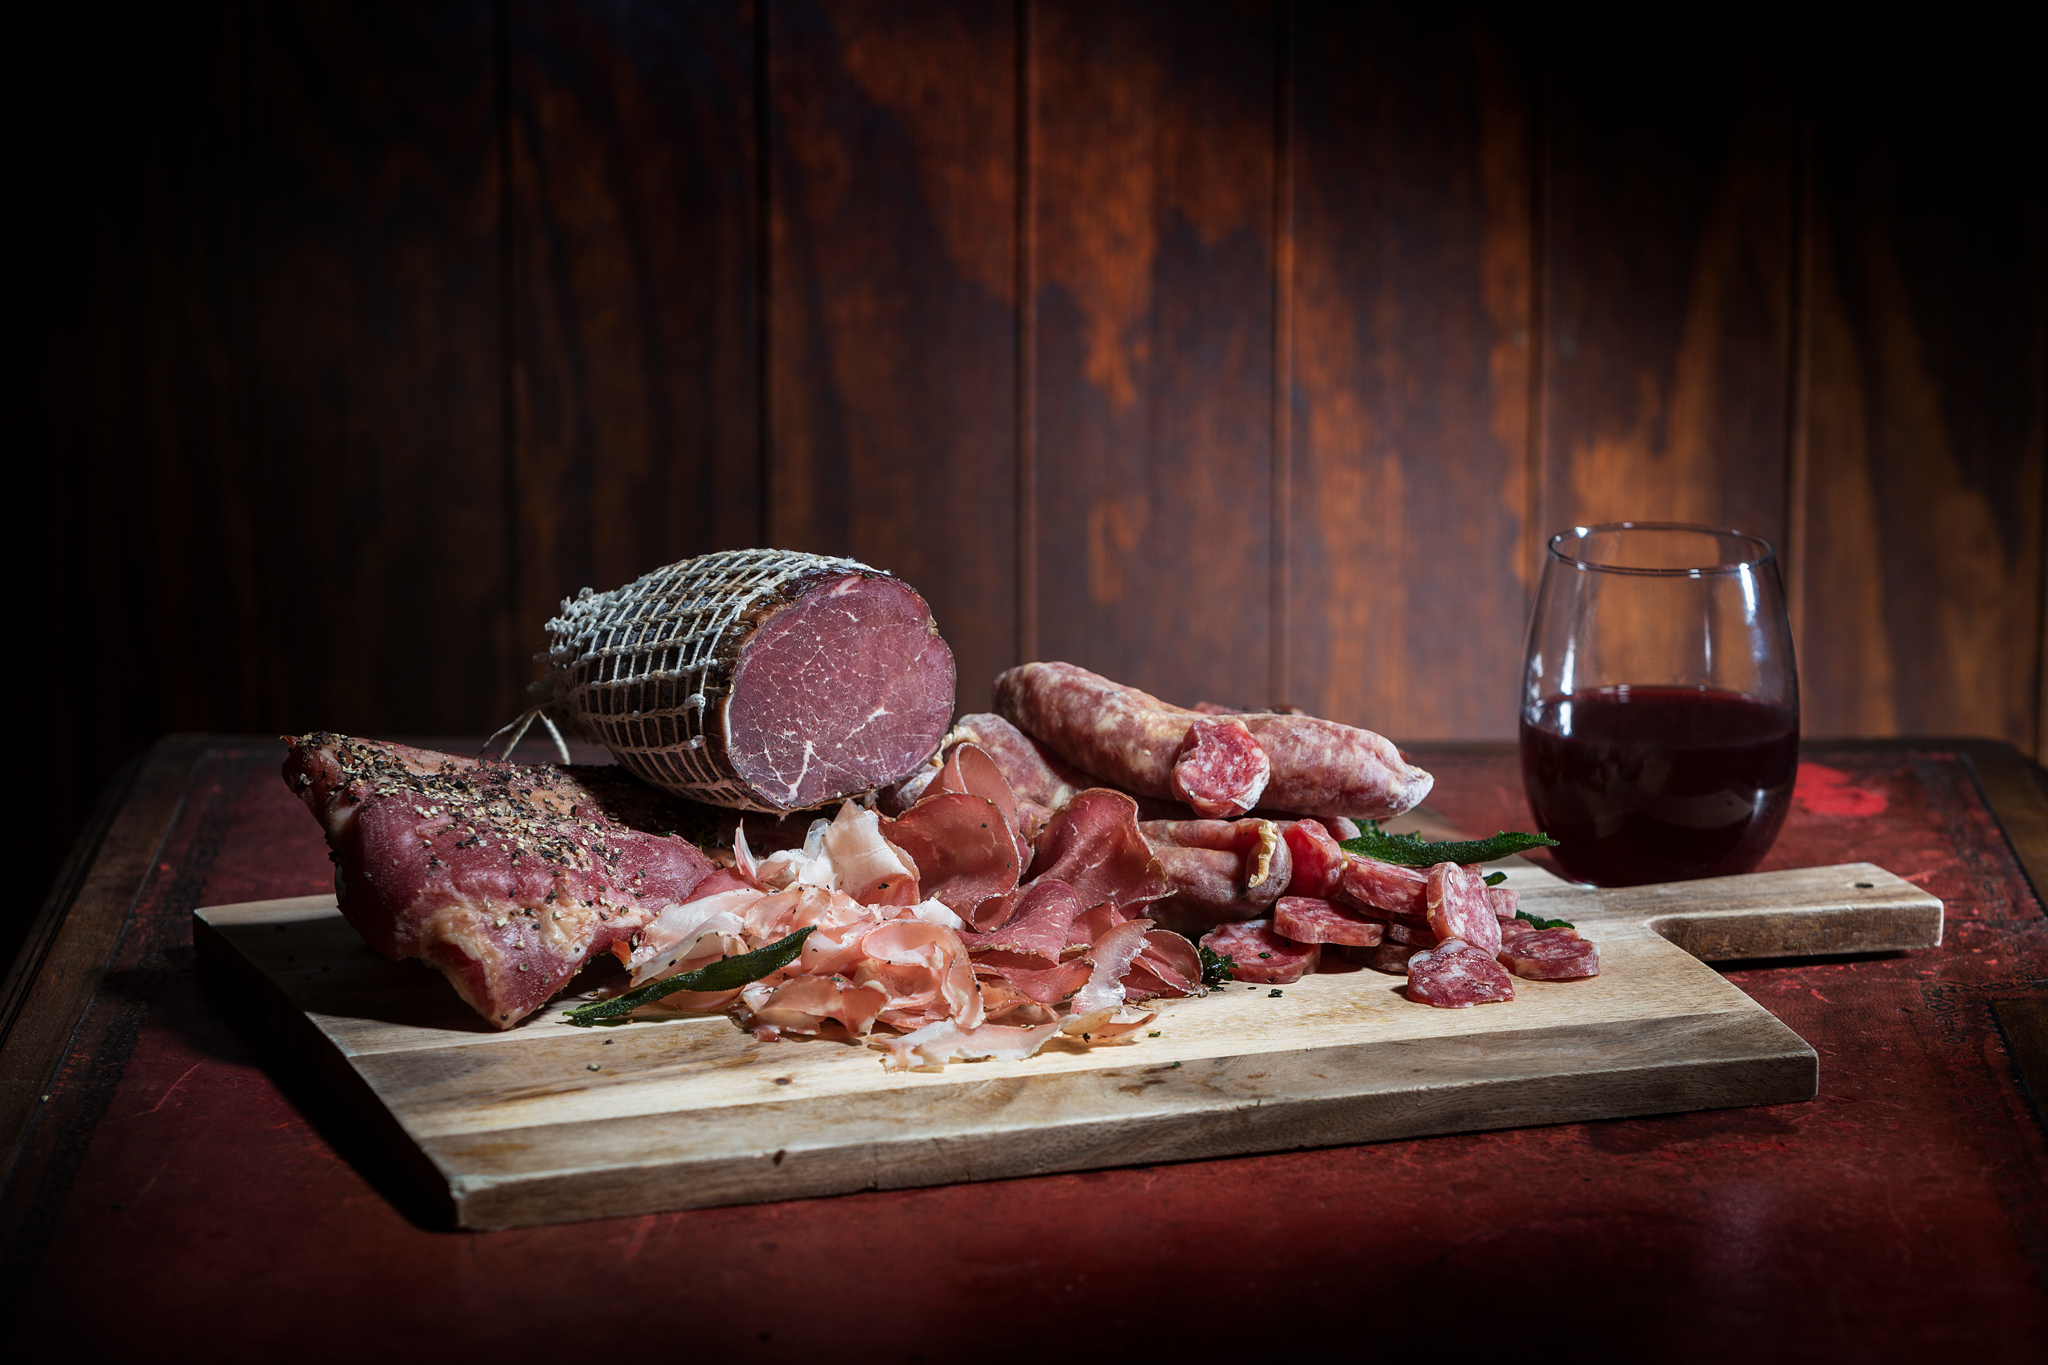 Delectable cured meats